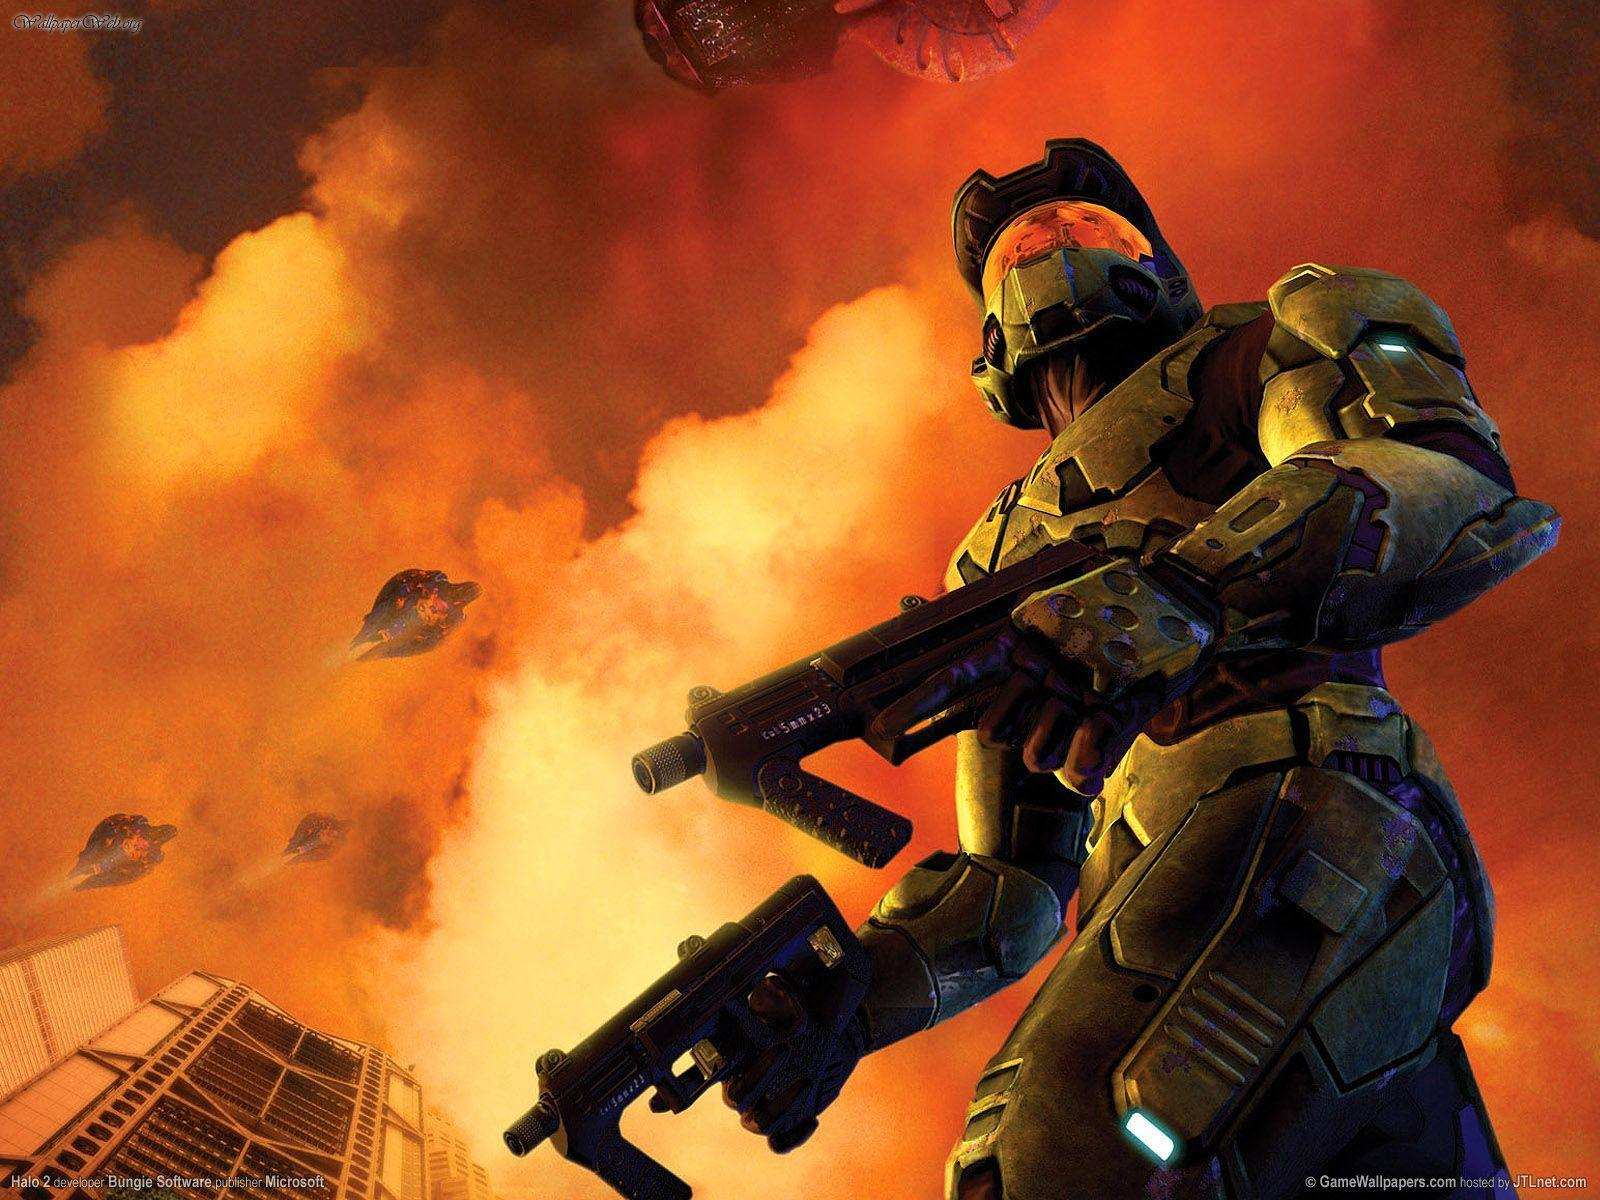 Games: Halo 2, picture nr. 29740